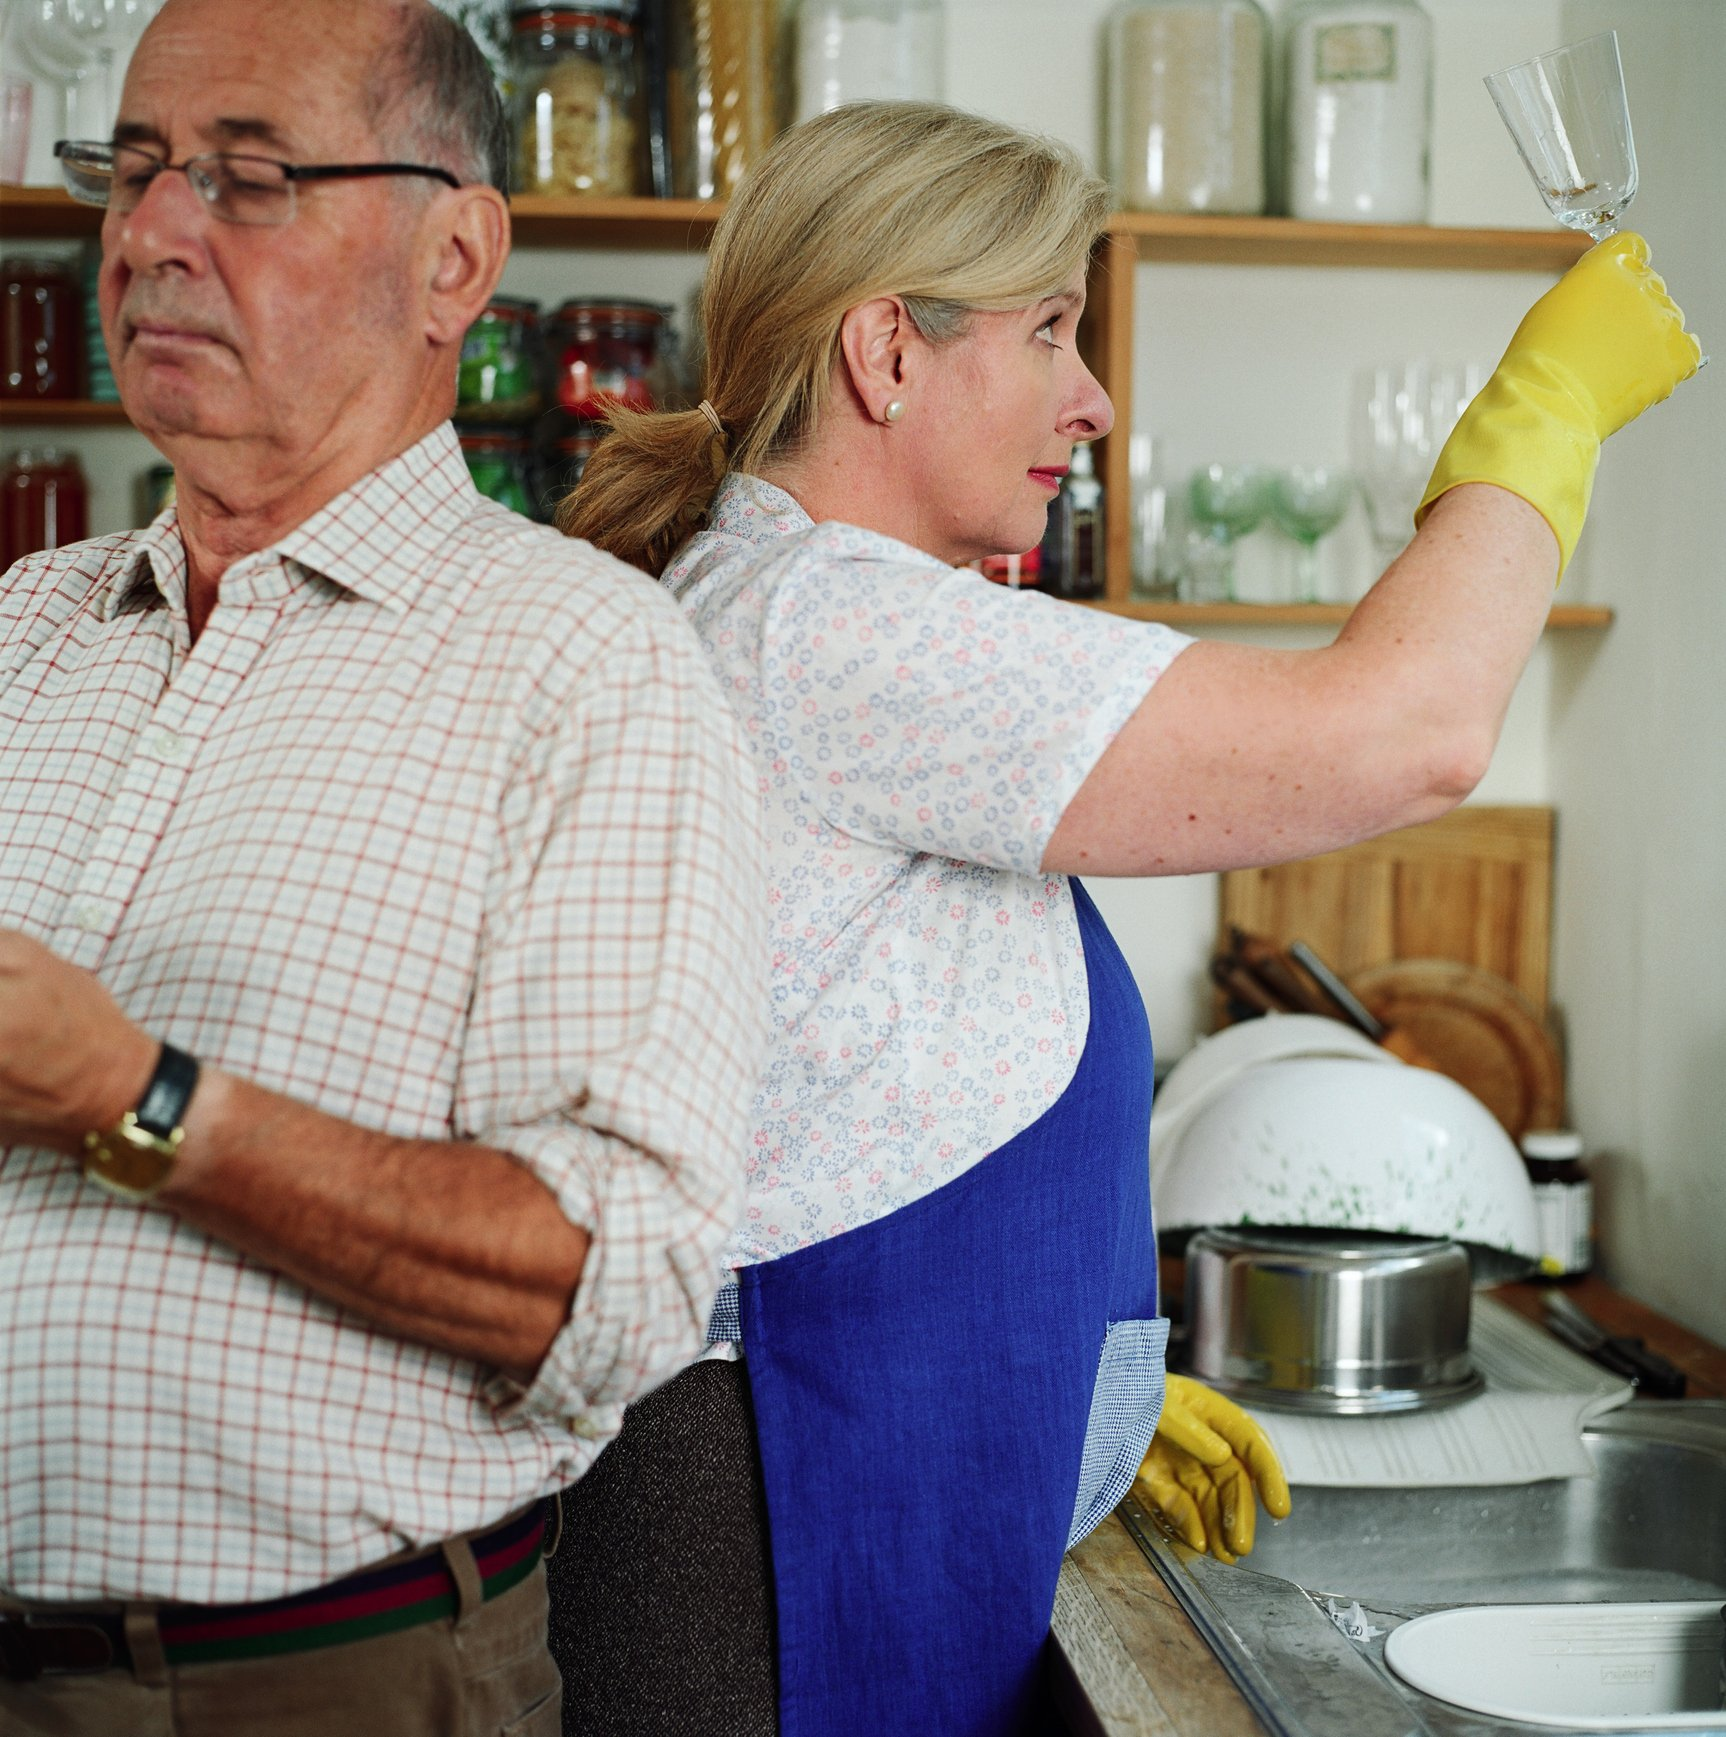 Photo of senior couple in kitchen | Photo: Getty Images